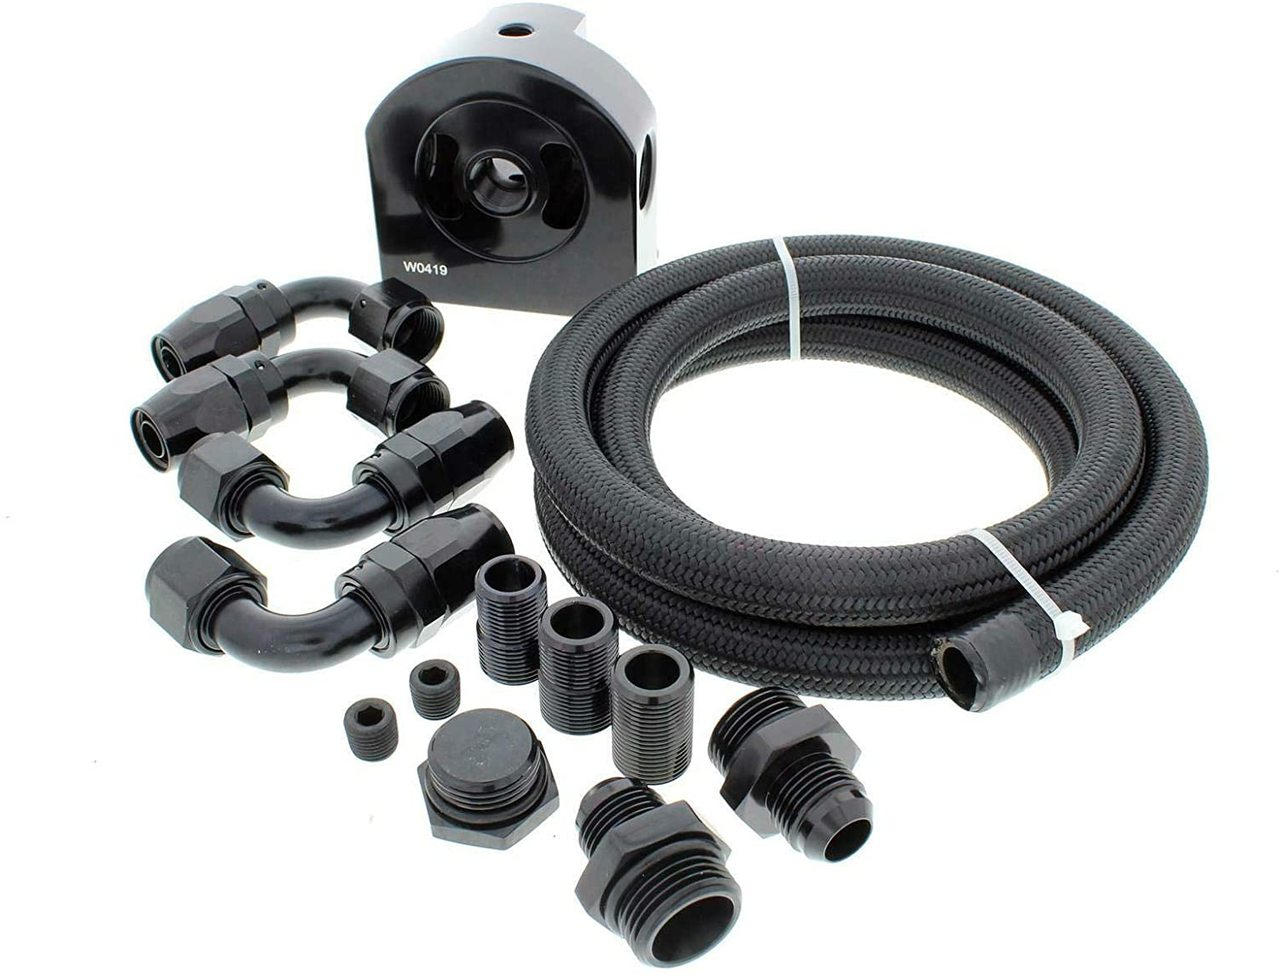 A-Team Performance Oil Filter Relocation Kit Compatible with GM LS LSX LS1 LS3 4.8 5.3 5.7 6.0